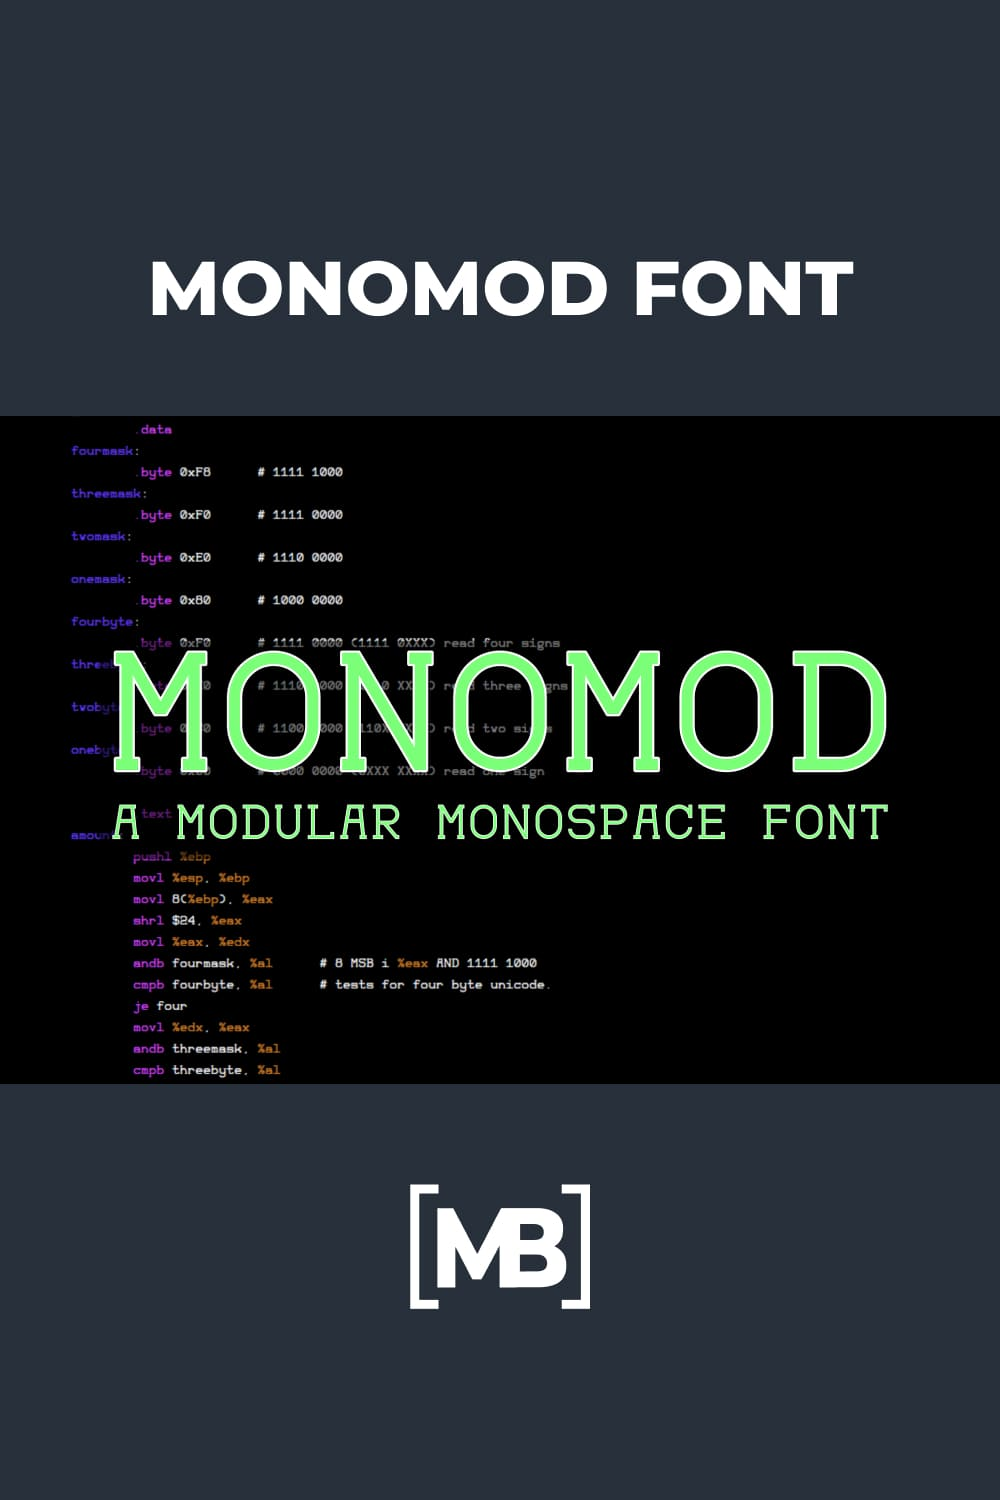 This is simple modular monospace font.